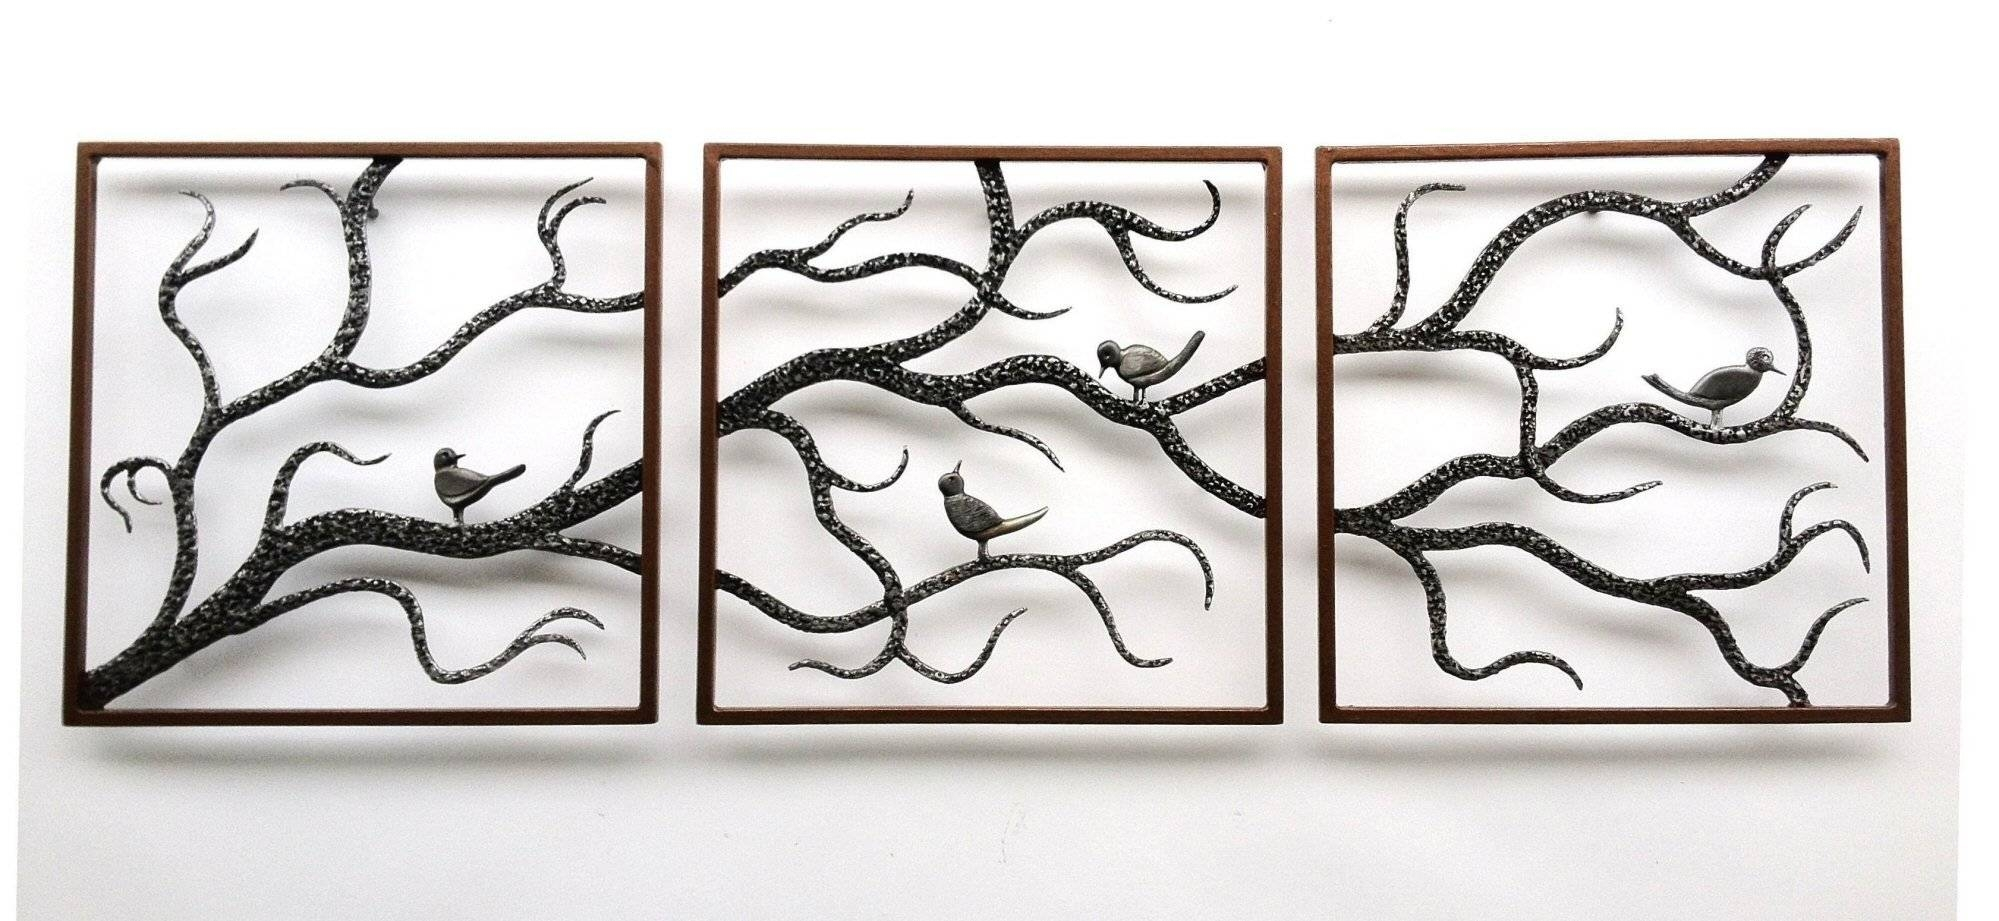 Splendid Metal Wall Artwork 105 Metal Leaves Wall Decor Canada With Best And Newest Large Metal Wall Art Decor (View 15 of 20)